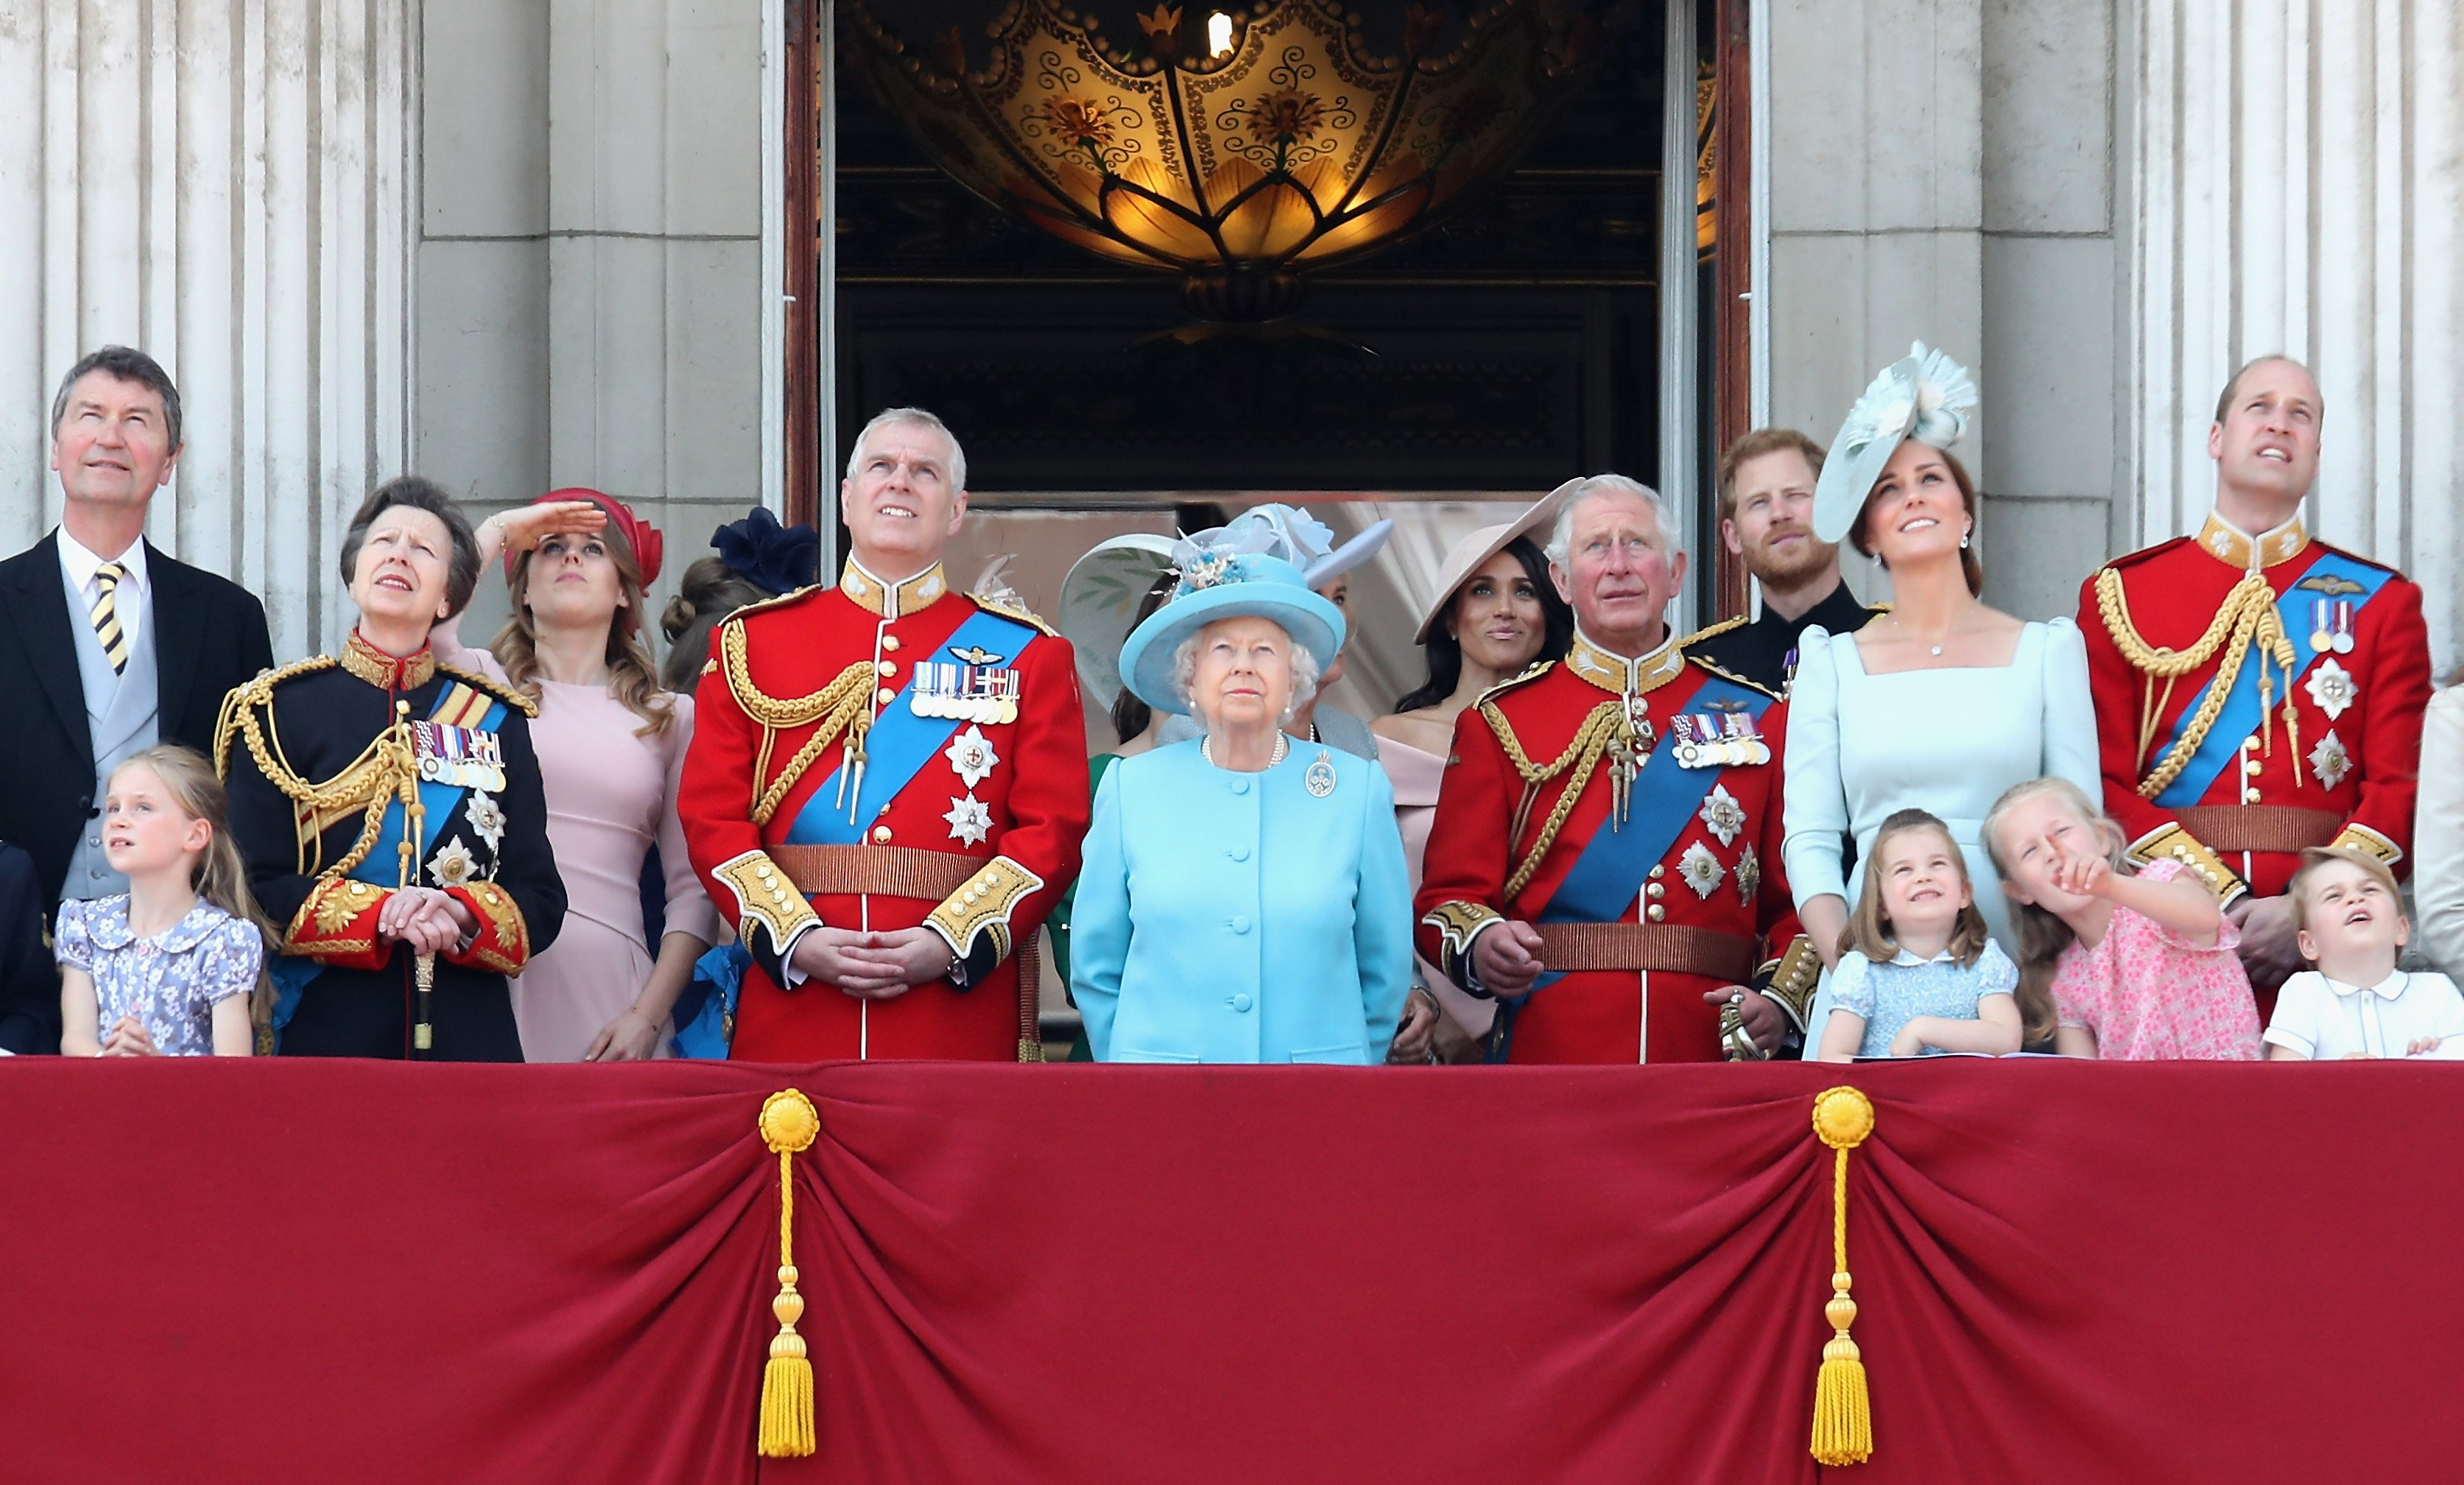 Image Credits: Getty Images / Chris Jackson   Princess Anne, Princess Royal, Princess Beatrice, Lady Louise Windsor, Prince Andrew, Duke of York, Queen Elizabeth II, Meghan, Duchess of Sussex, Prince Charles, Prince of Wales, Prince Harry, Duke of Sussex, Catherine, Duchess of Cambridge, Prince William, Duke of Cambridge, Princess Charlotte of Cambridge, Savannah Phillips, Prince George of Cambridge and Isla Phillips watch the flypast on the balcony of Buckingham Palace during Trooping The Colour on June 9, 2018 in London, England. The annual ceremony involving over 1400 guardsmen and cavalry, is believed to have first been performed during the reign of King Charles II. The parade marks the official birthday of the Sovereign, even though the Queen's actual birthday is on April 21st.